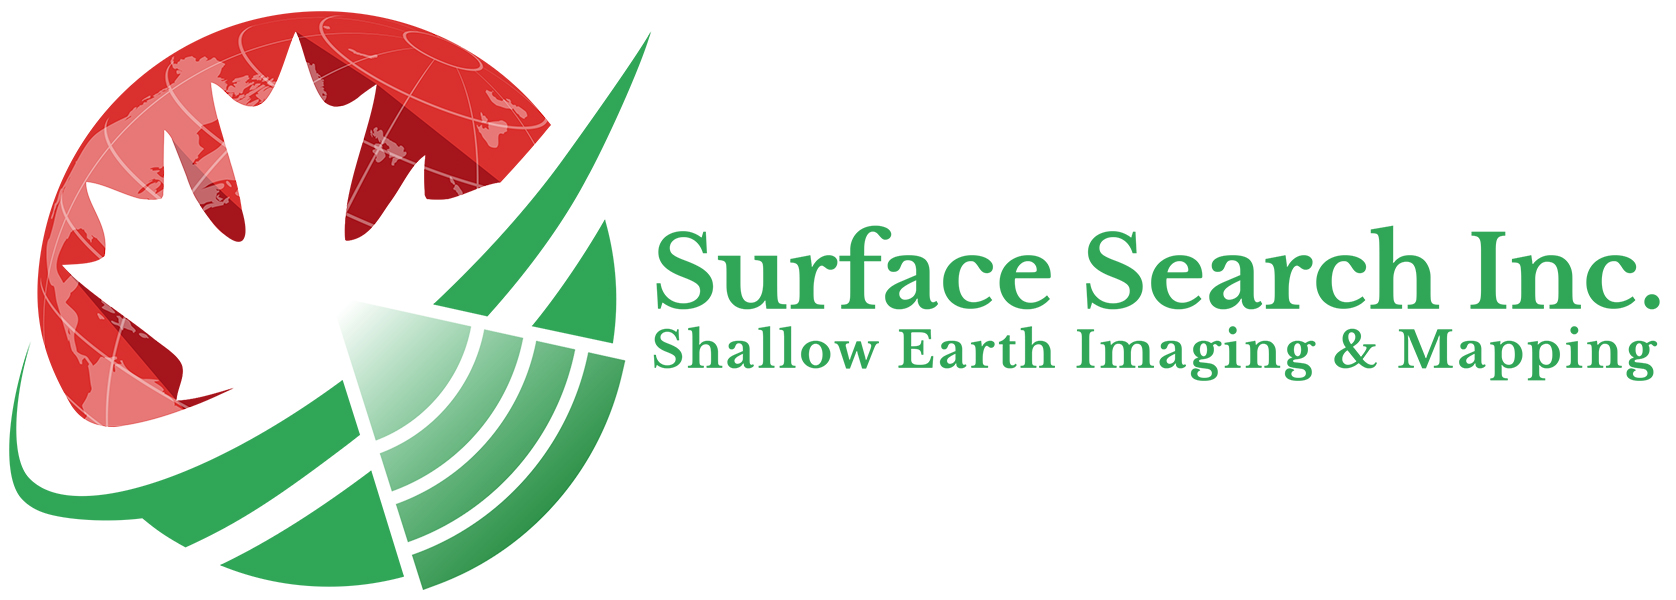 Subsurface Imaging and Mapping Using Shallow Geophysics